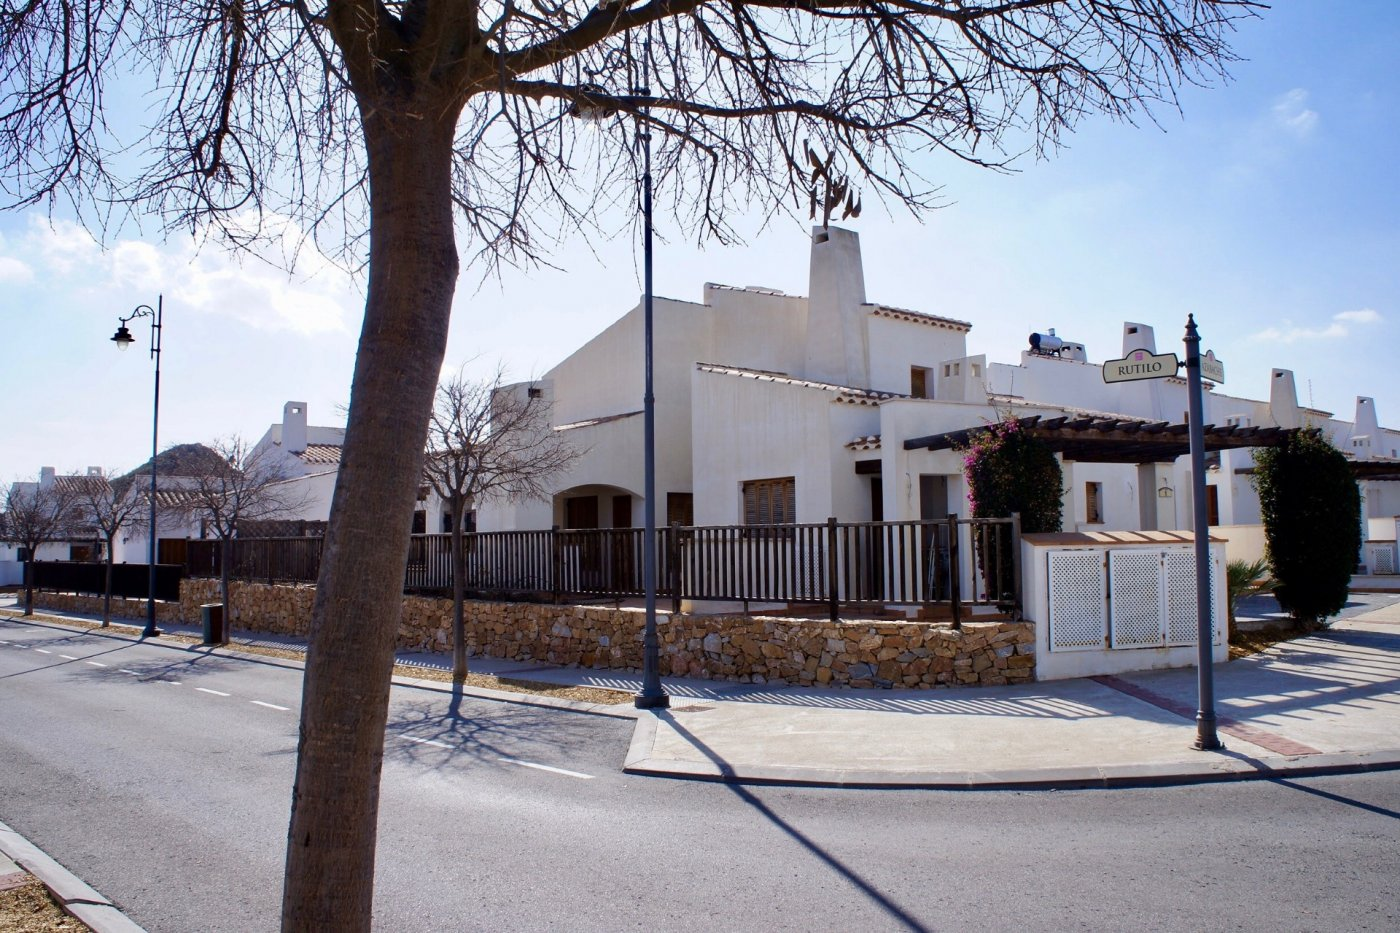 Villa ref 3265-02798 for sale in El Valle Golf Resort Spain - Quality Homes Costa Cálida